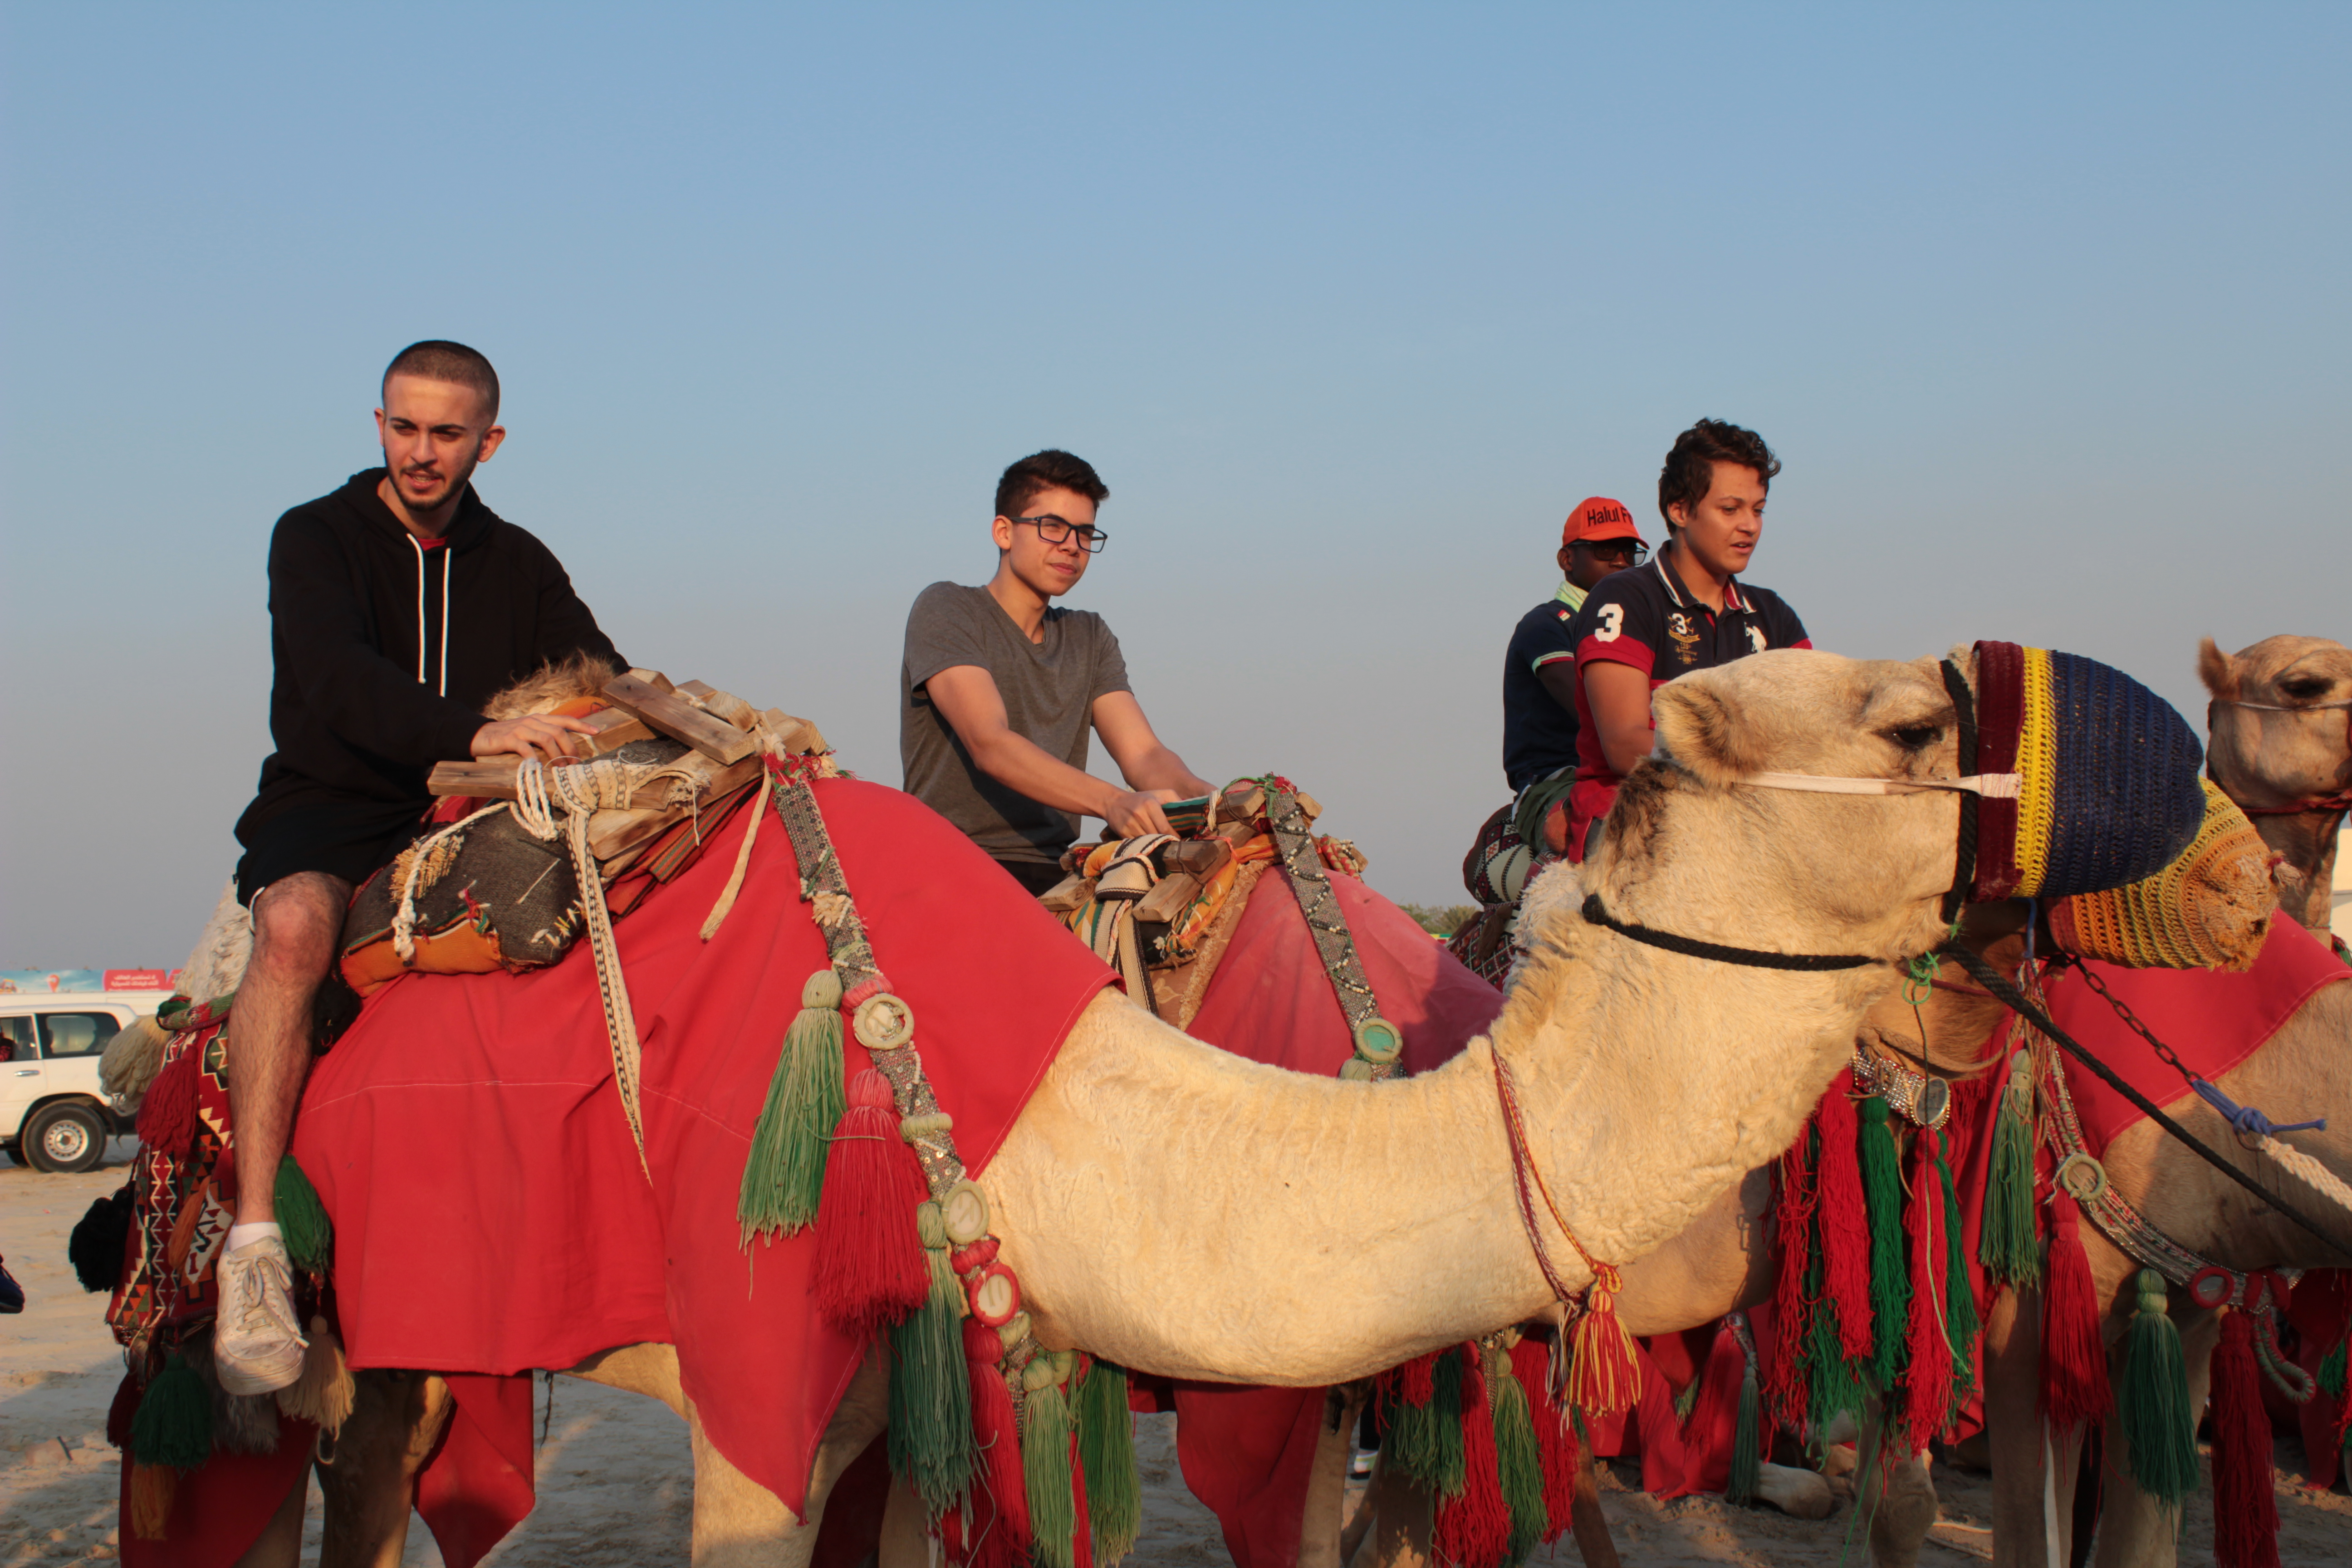 3 male students riding camels